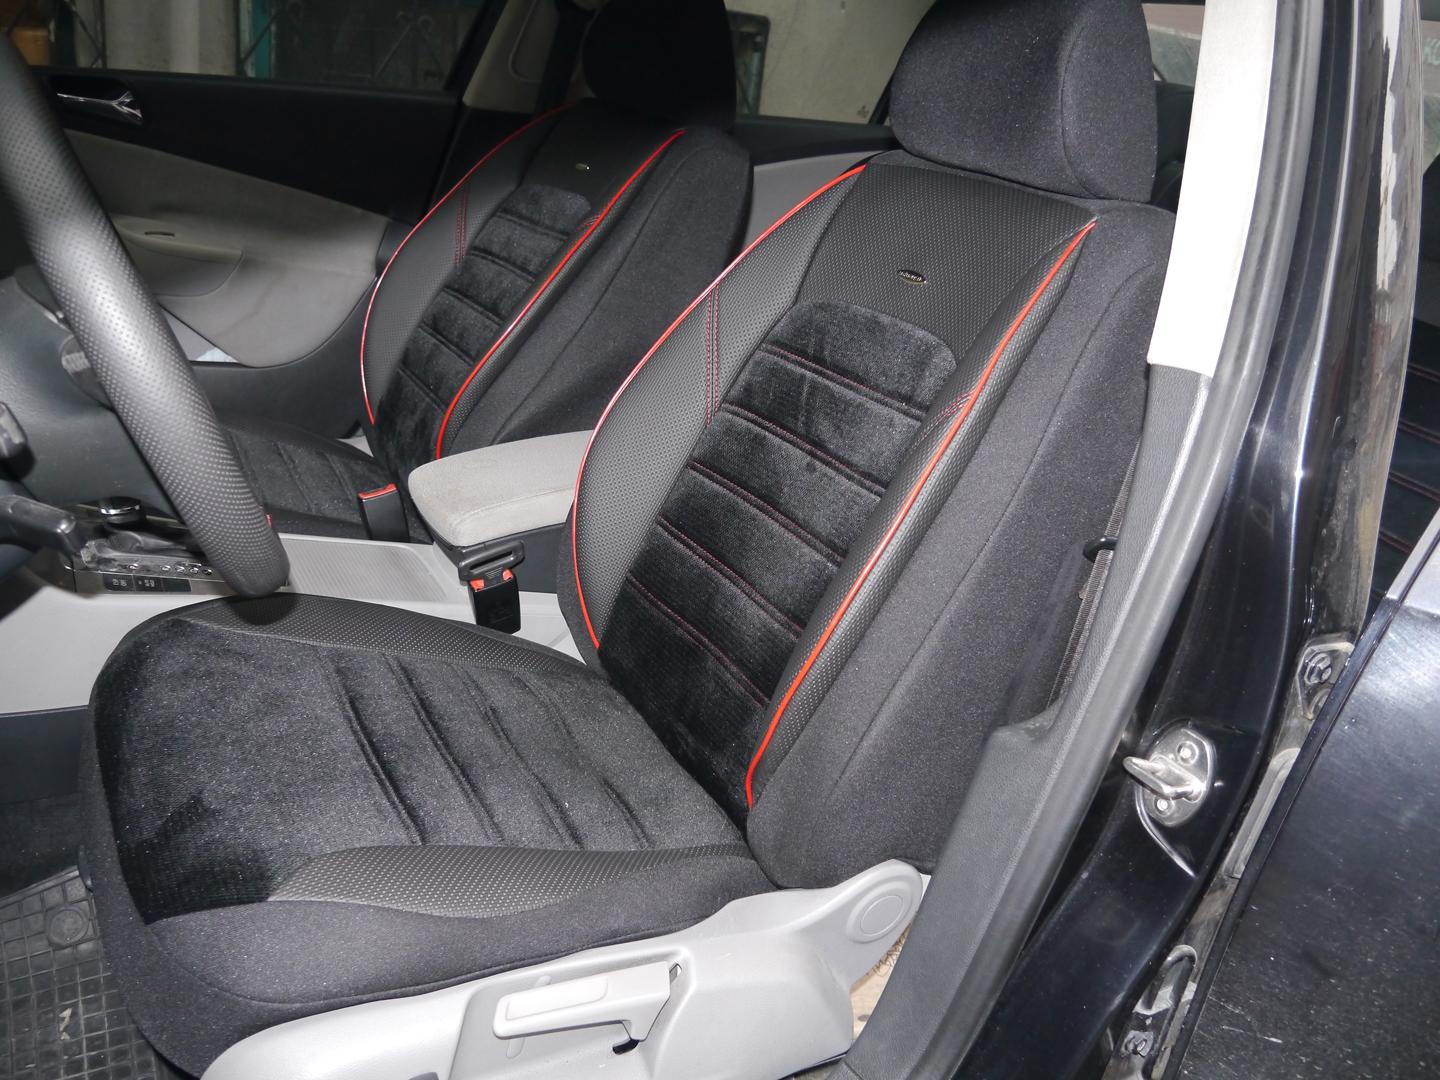 Excellent Car Seat Covers Protectors For Fiat Tipo No4 Dailytribune Chair Design For Home Dailytribuneorg